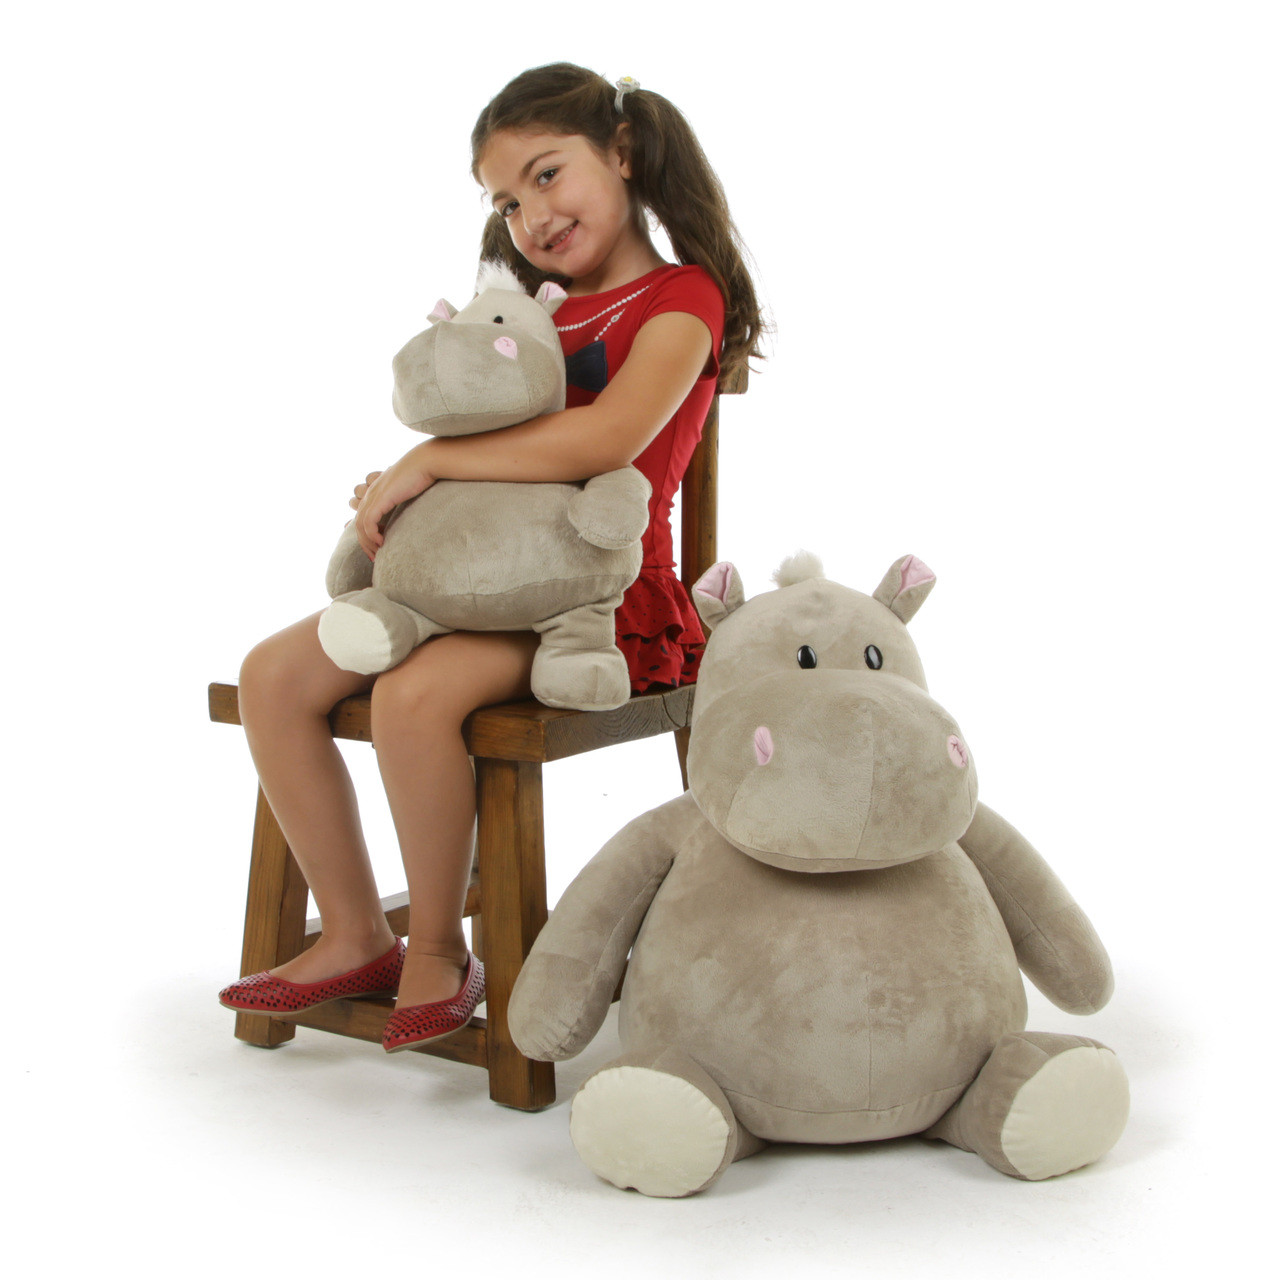 Huge Hippo Stuffed Animal by Giant Teddy